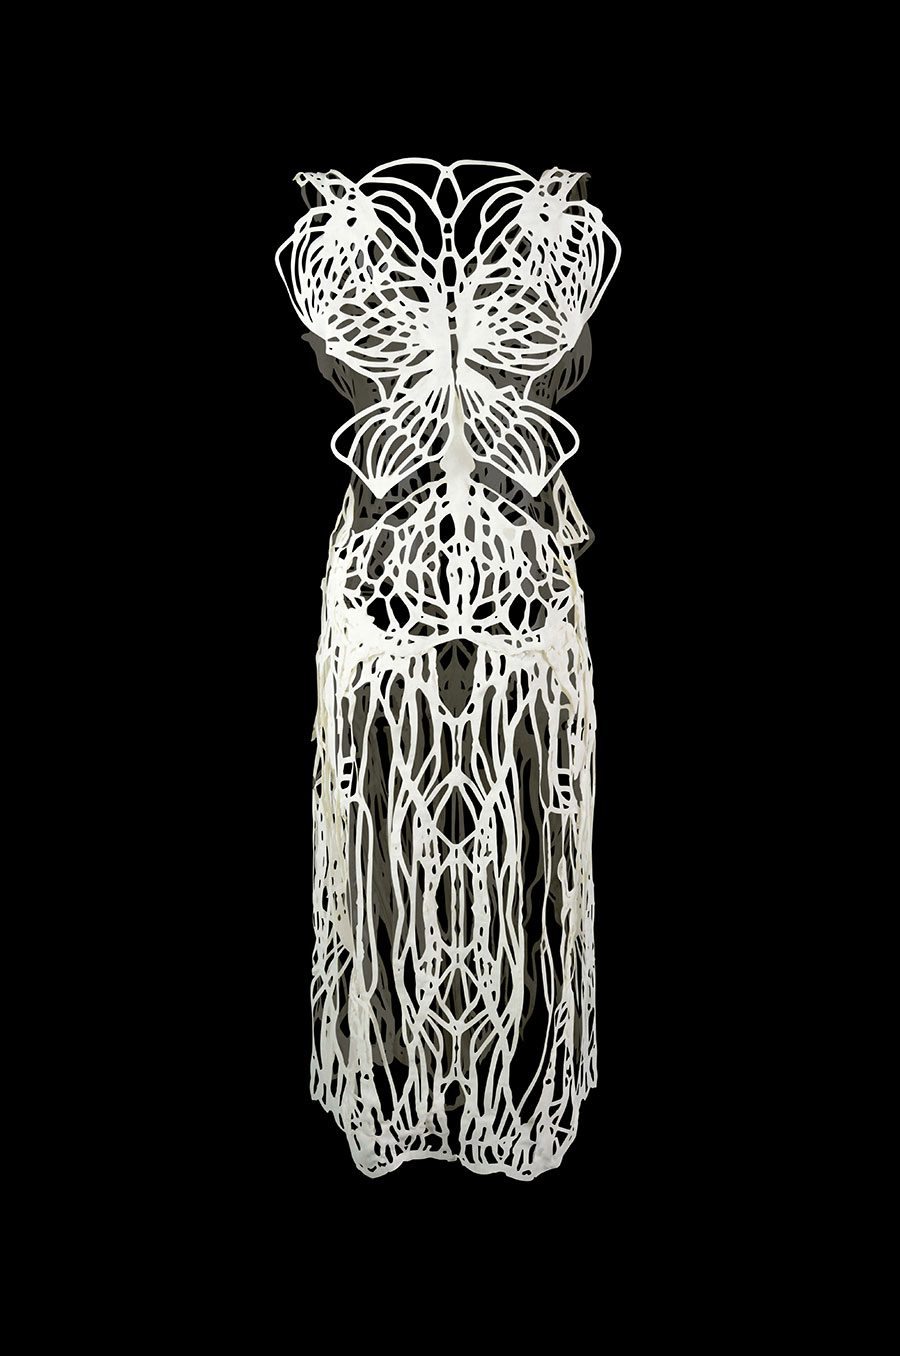 2016-Amy-Karle-Internal-Collection-dress-based-on-ligaments-02